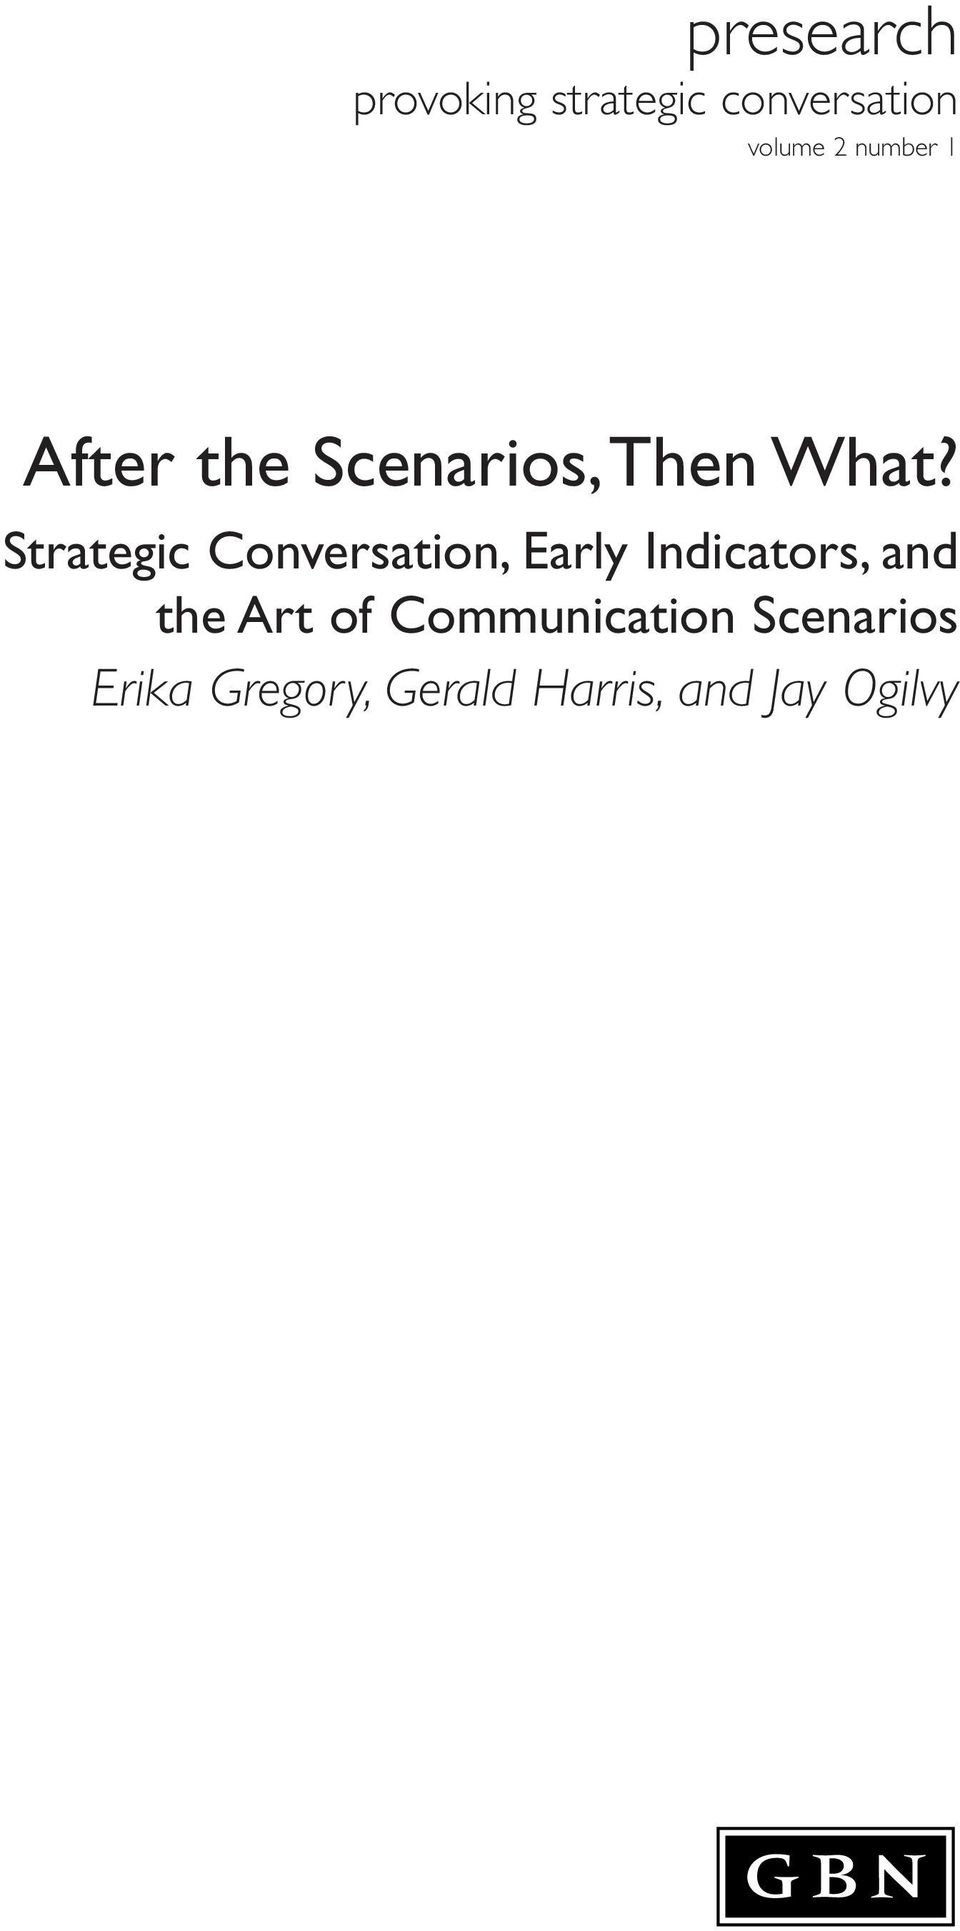 Strategic Conversation, Early Indicators, and the